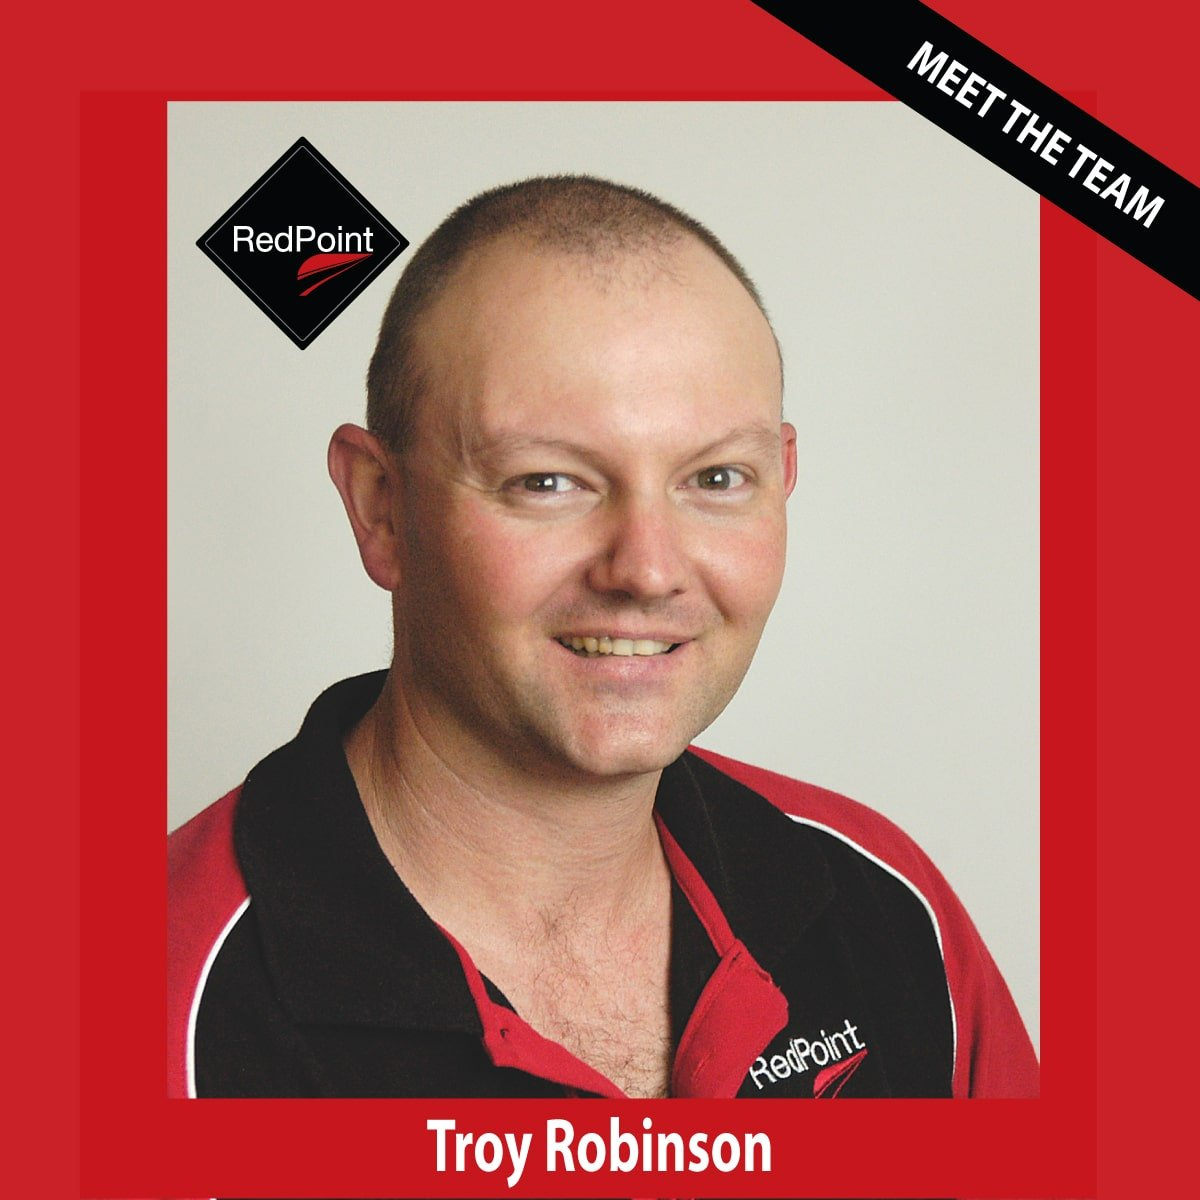 Team RedPoint Troy Robinson